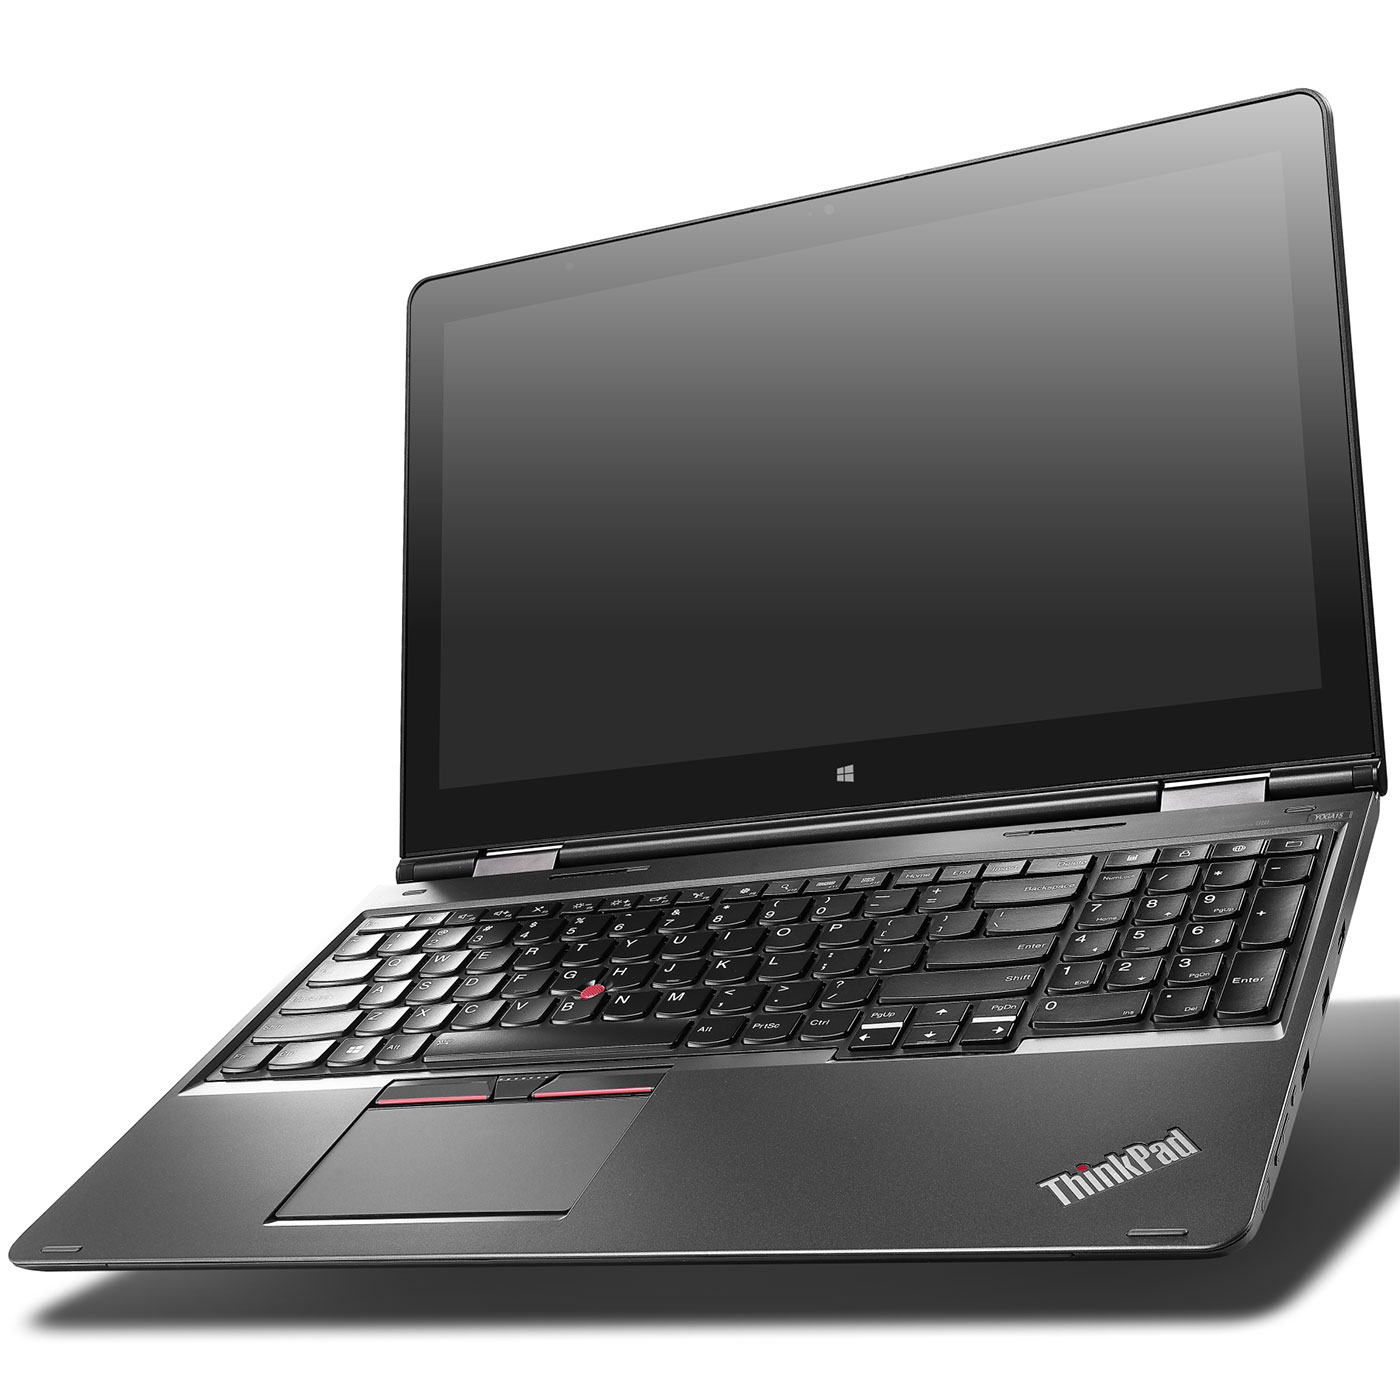 lenovo thinkpad yoga 15 20dq0039fr pc portable lenovo sur ldlc. Black Bedroom Furniture Sets. Home Design Ideas